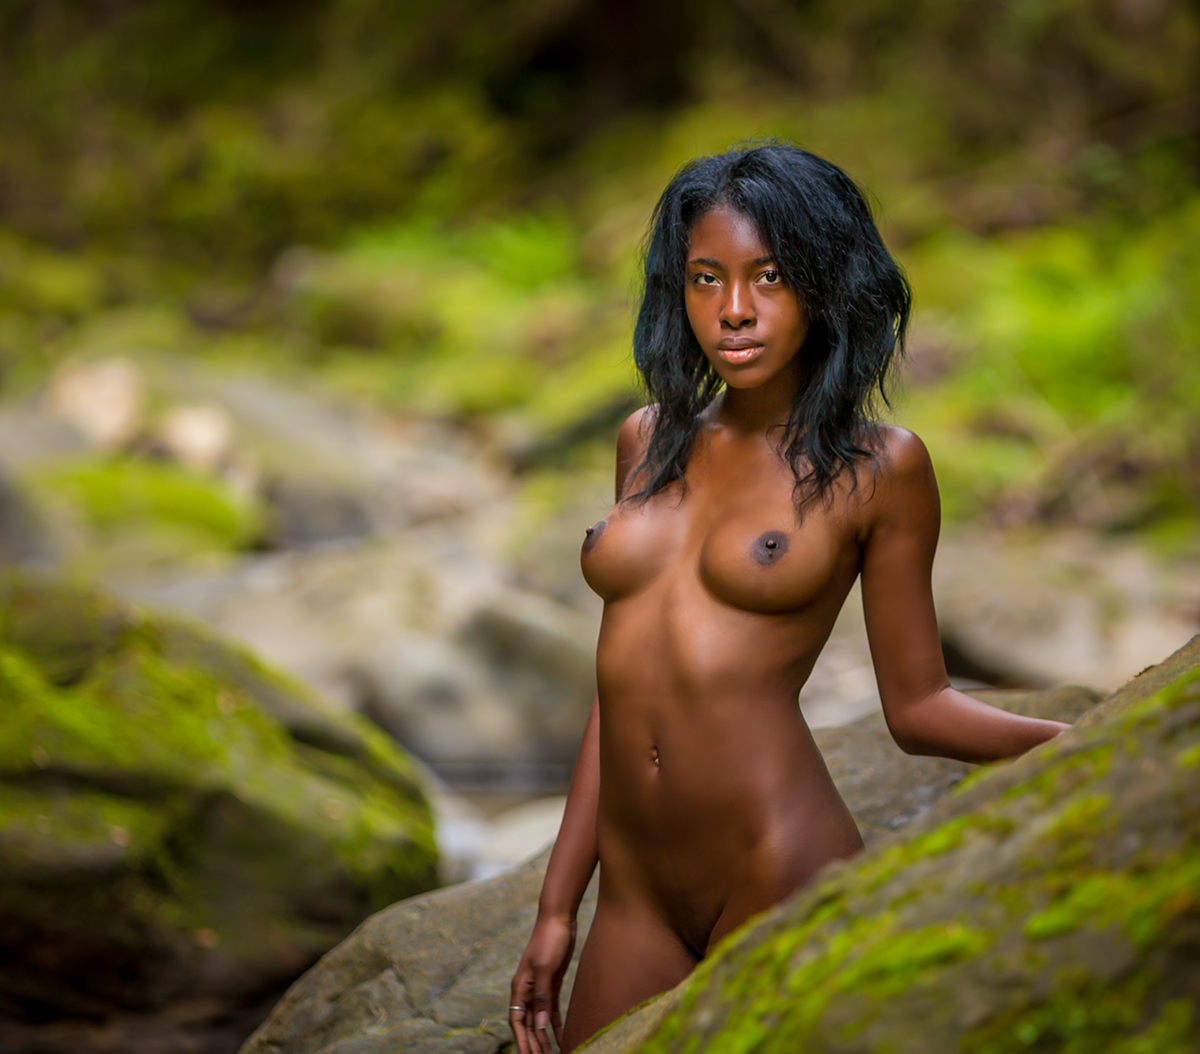 Black girl nude — photo 11